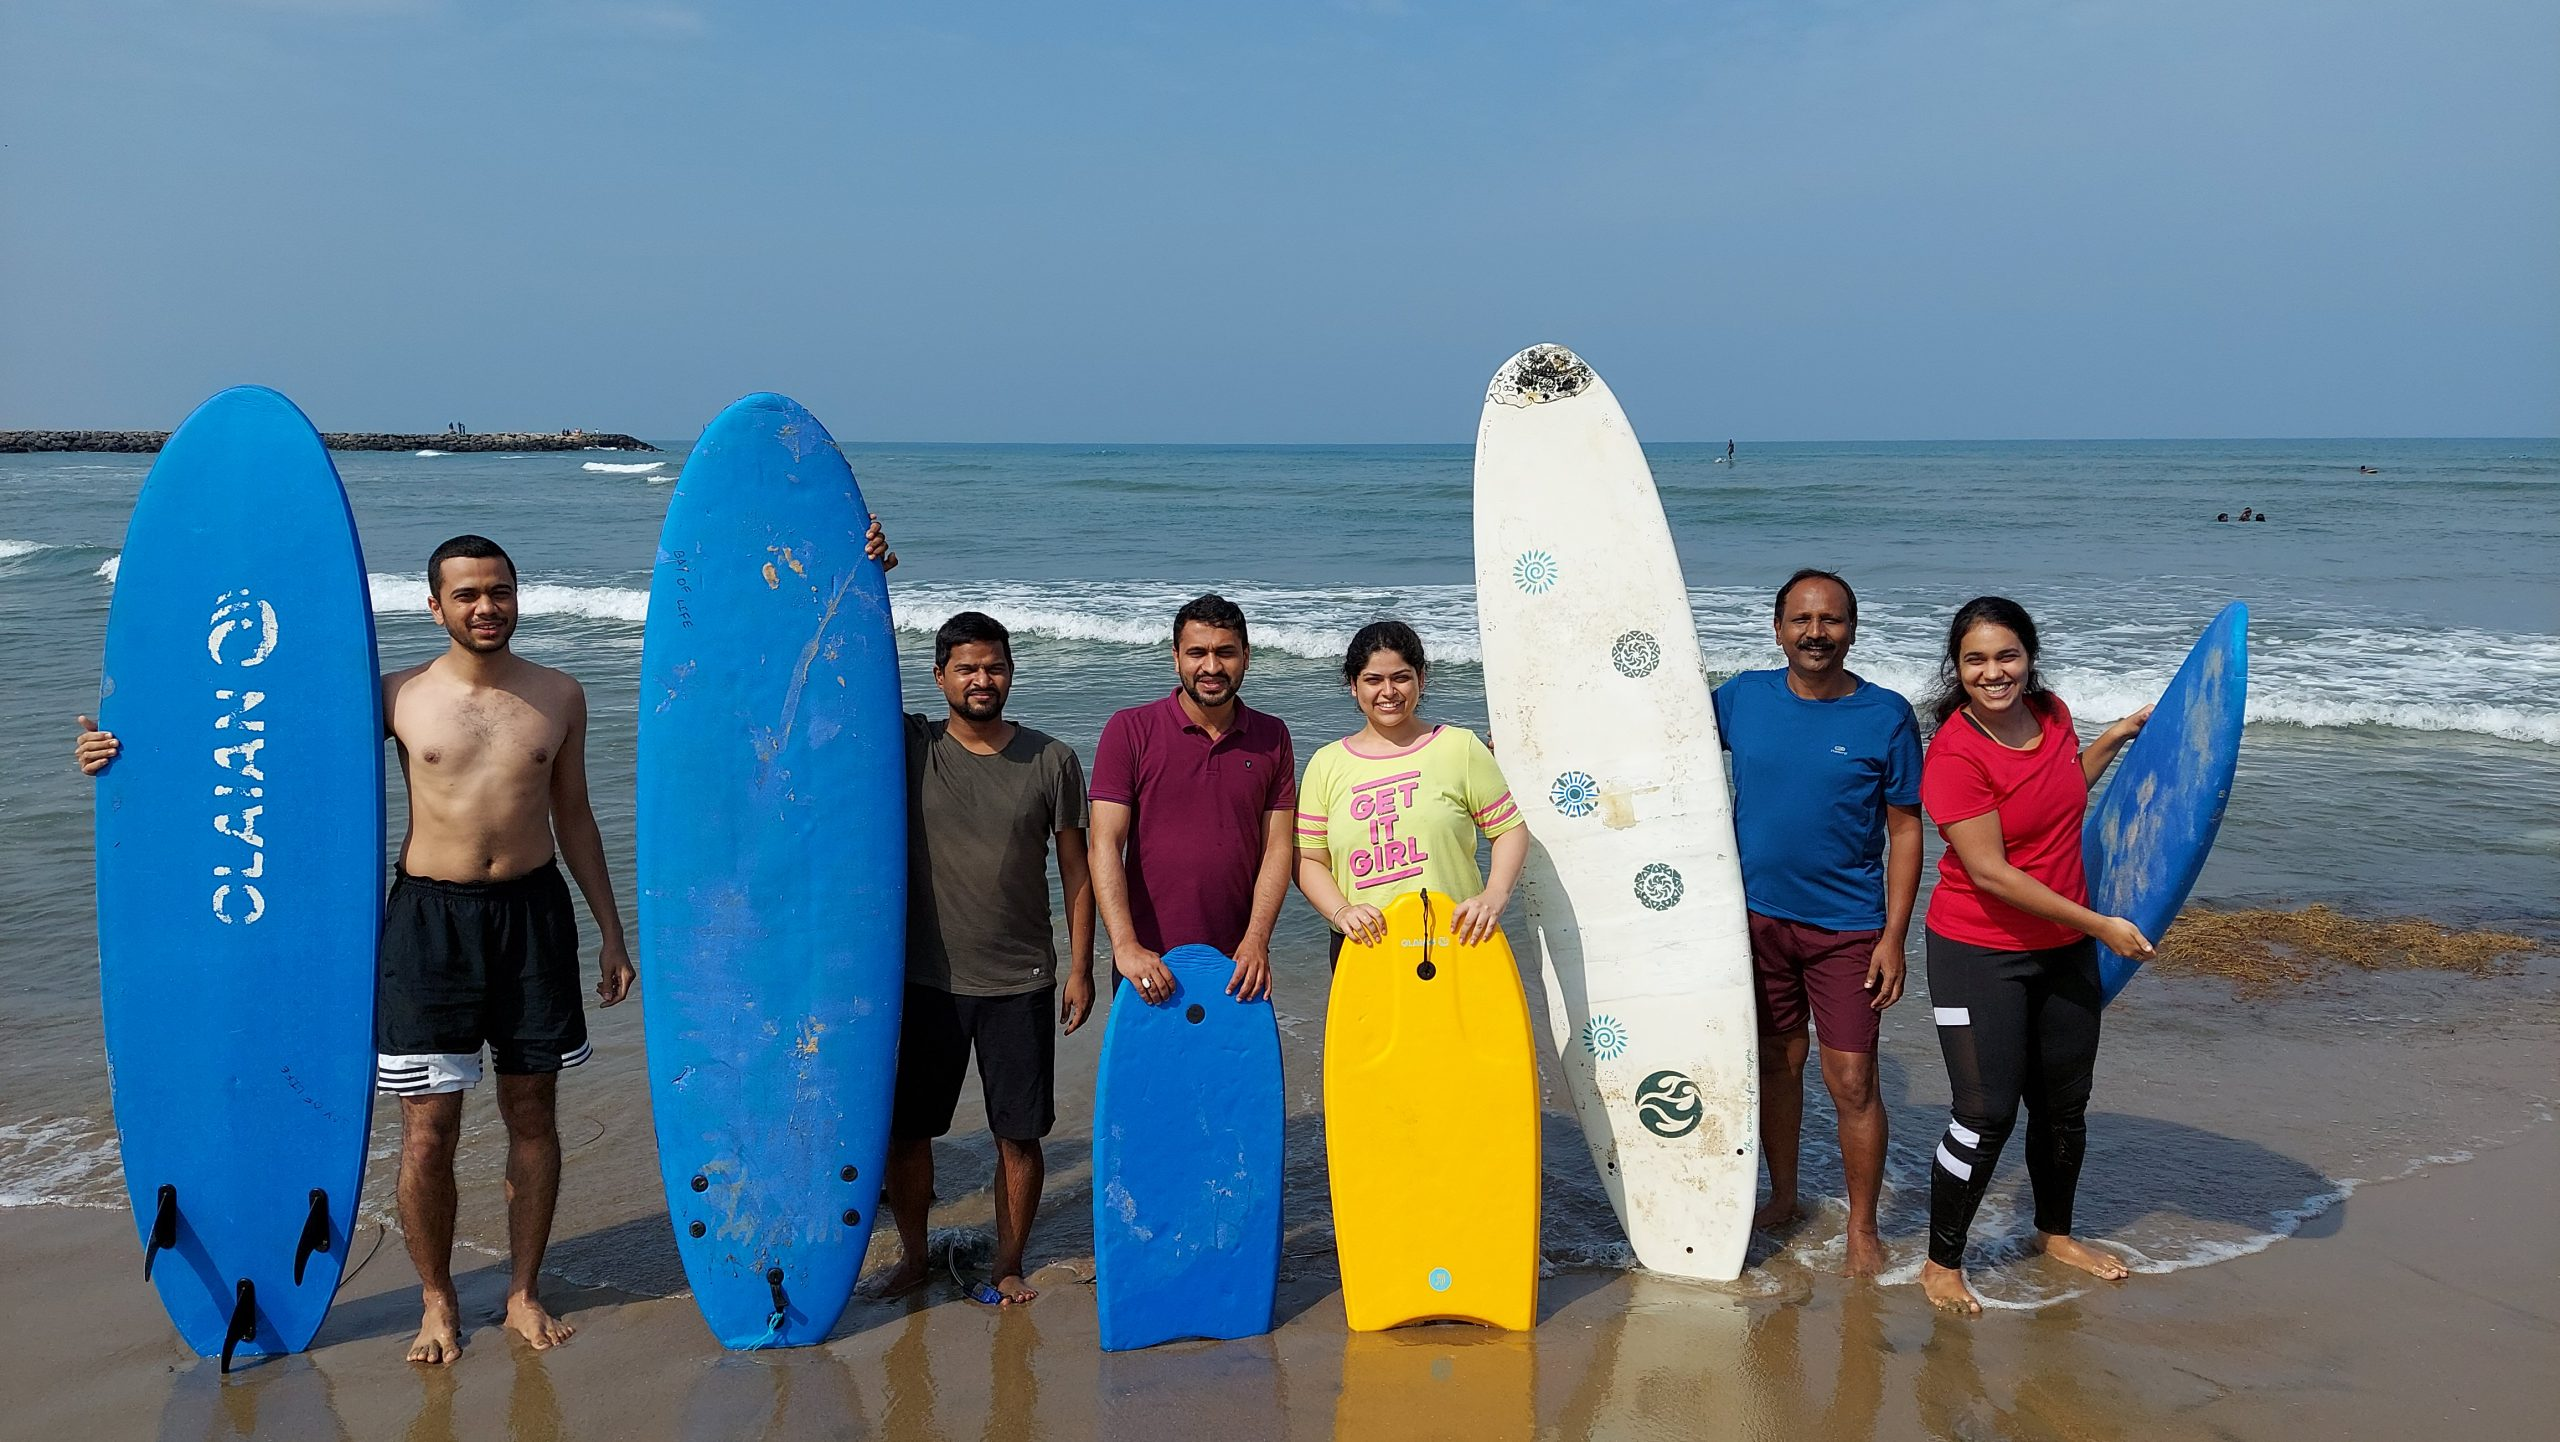 Students surfing the waves at Kovalam Beach